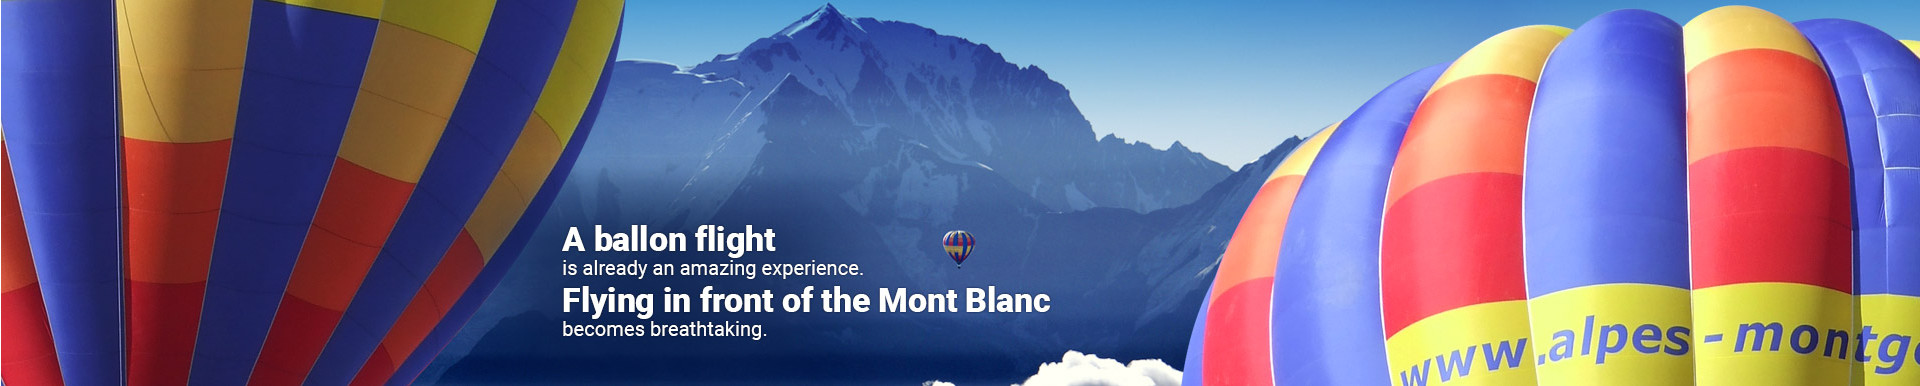 Front of the Mont Blanc